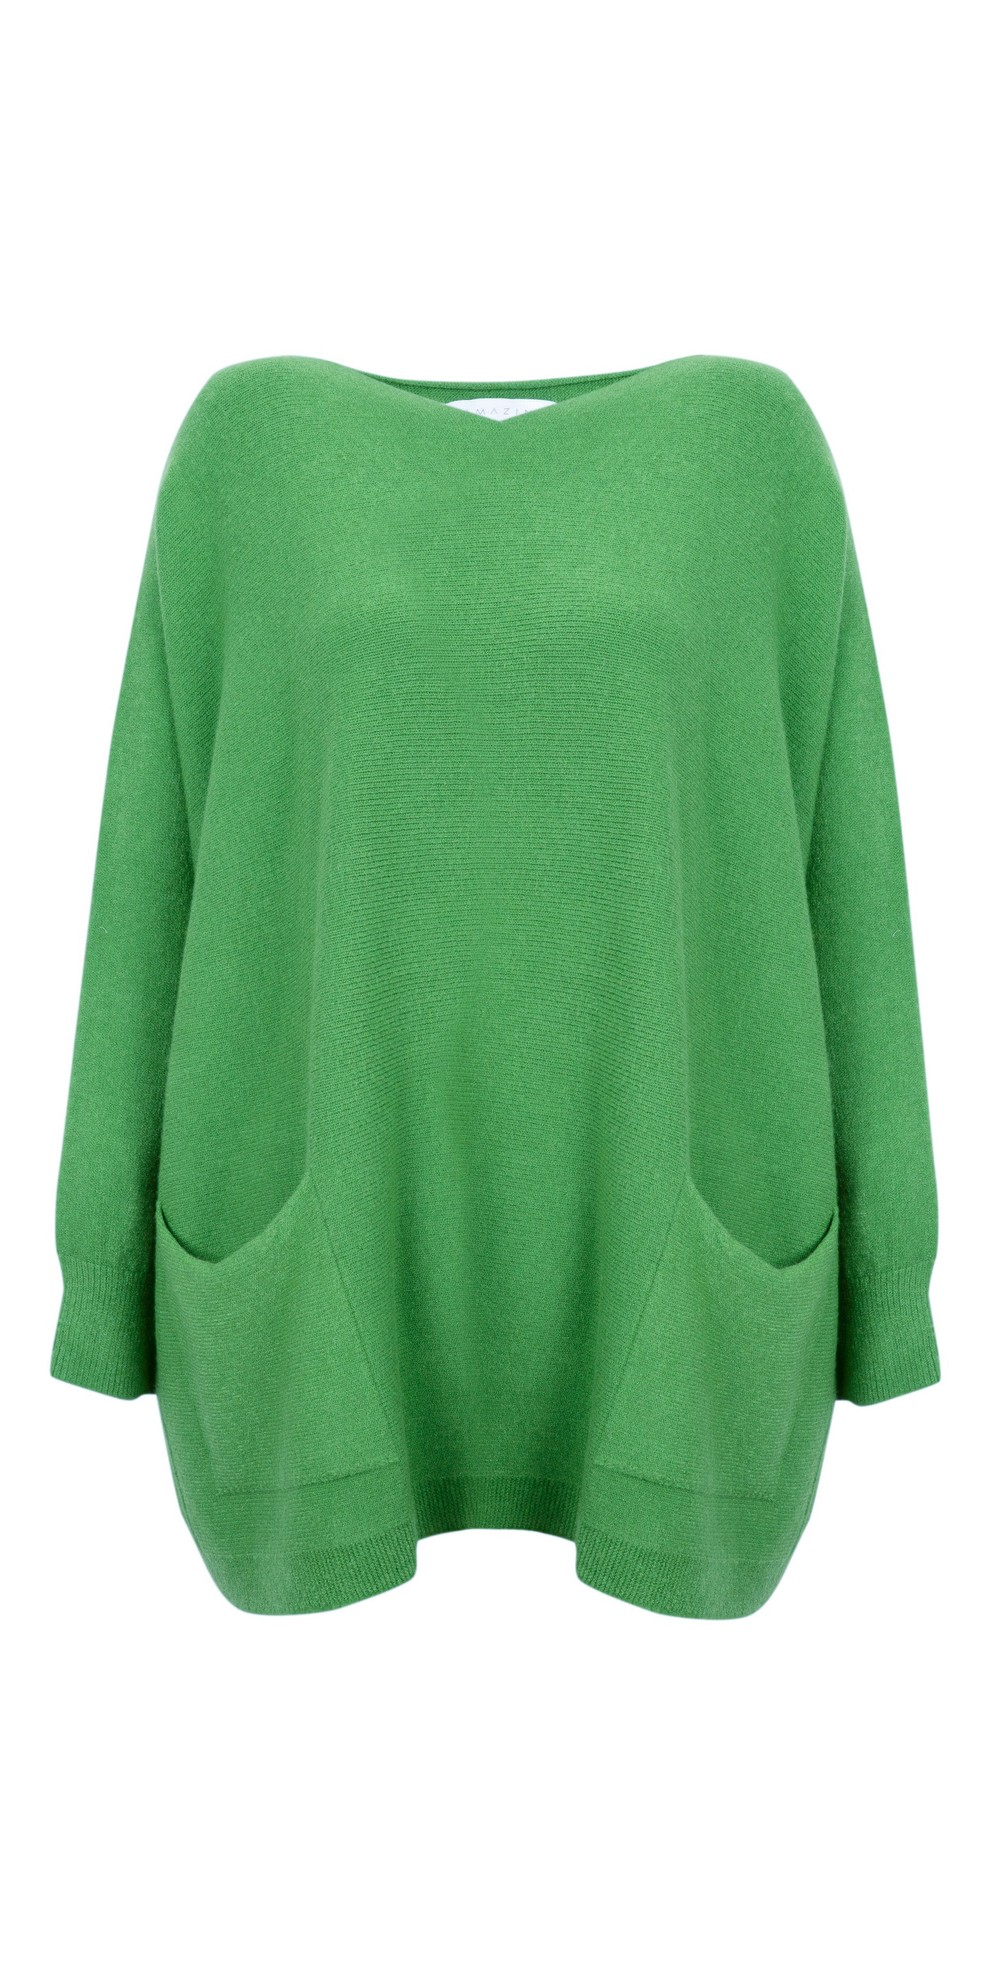 Carys Sweater Green - Amazing Woman